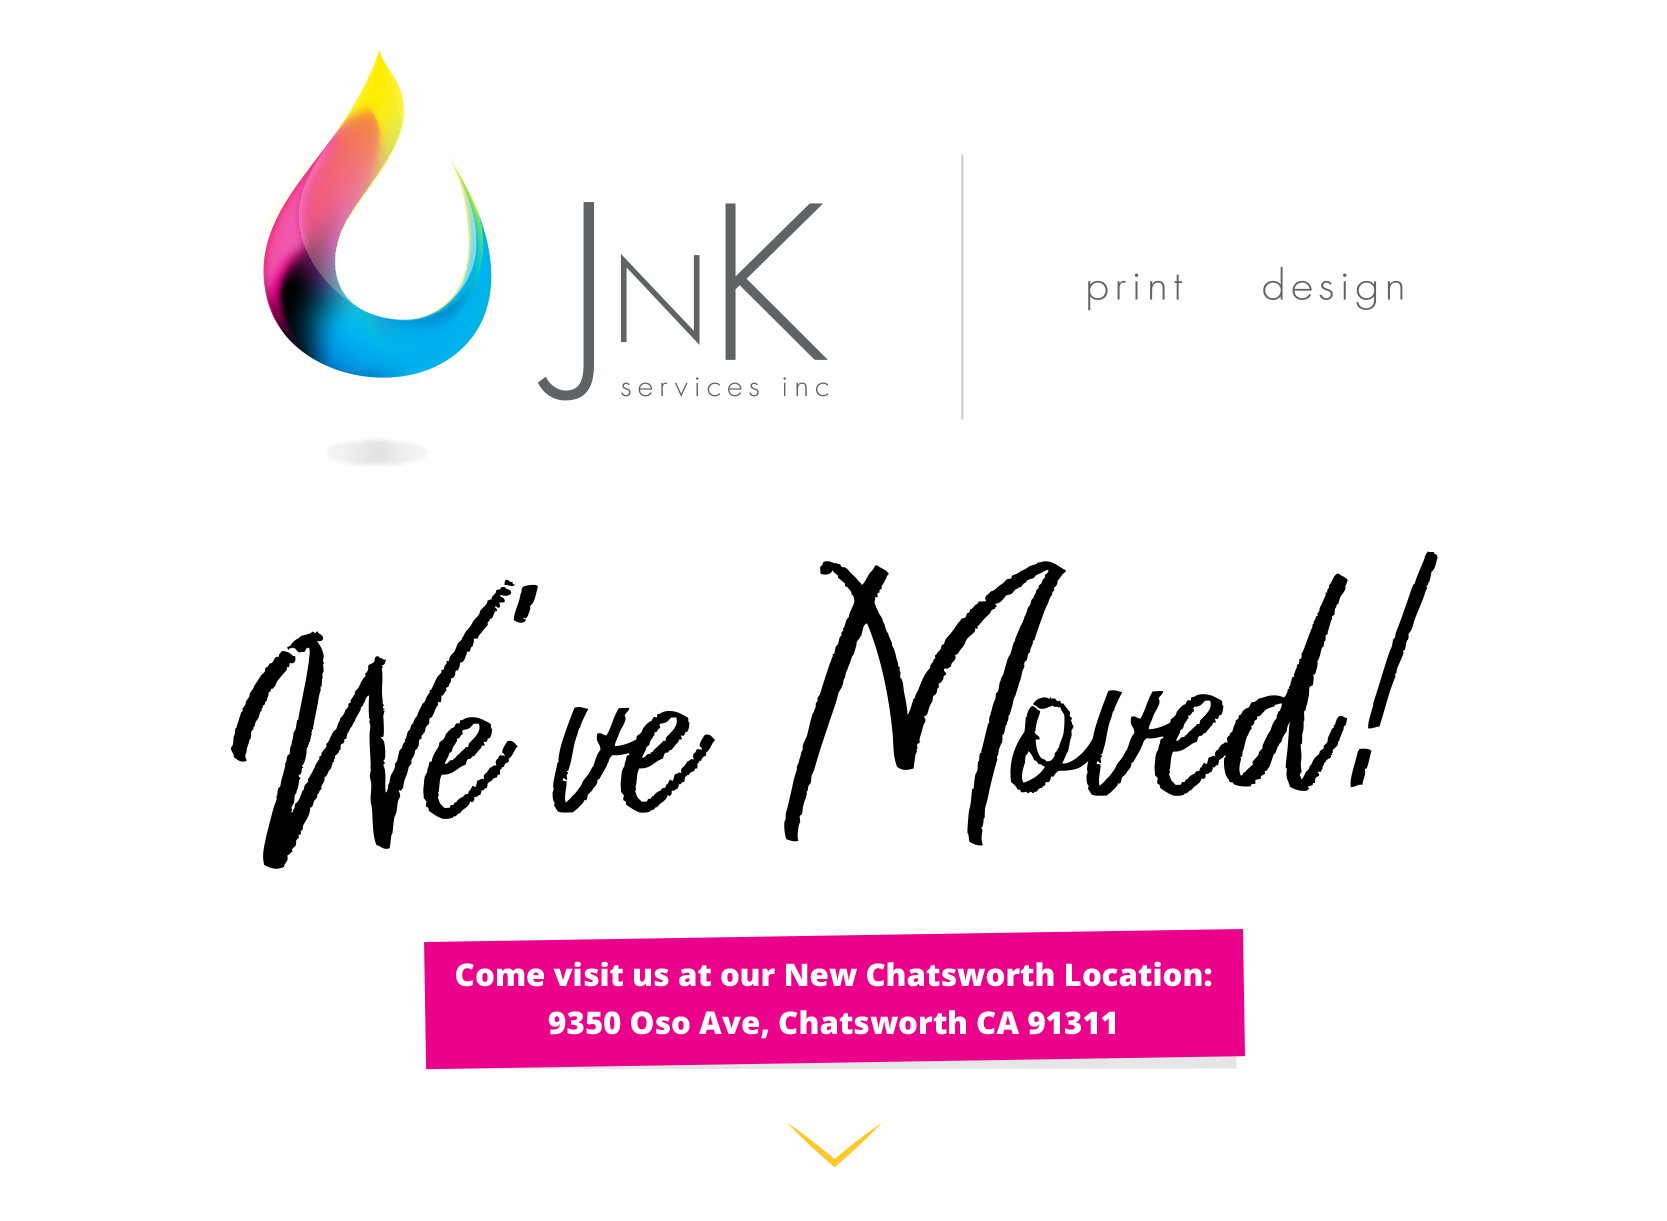 We've Moved to 9350 Oso Ave, Chatsworth, CA 91311